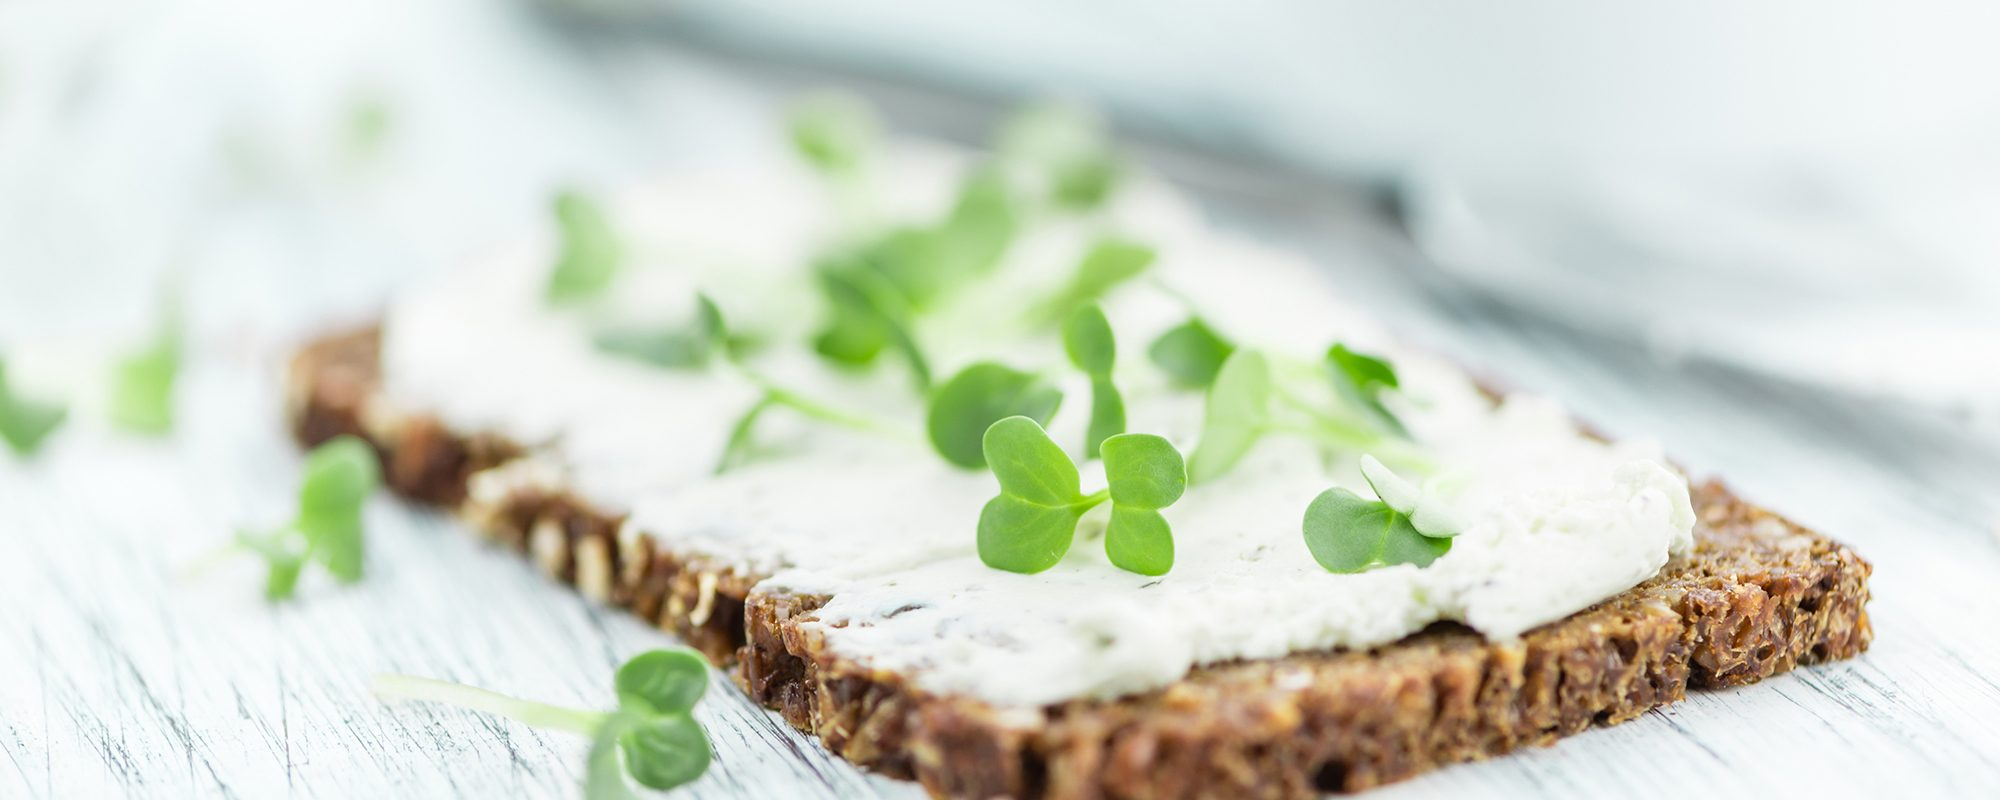 Salad cress with cream cheese on rye bread